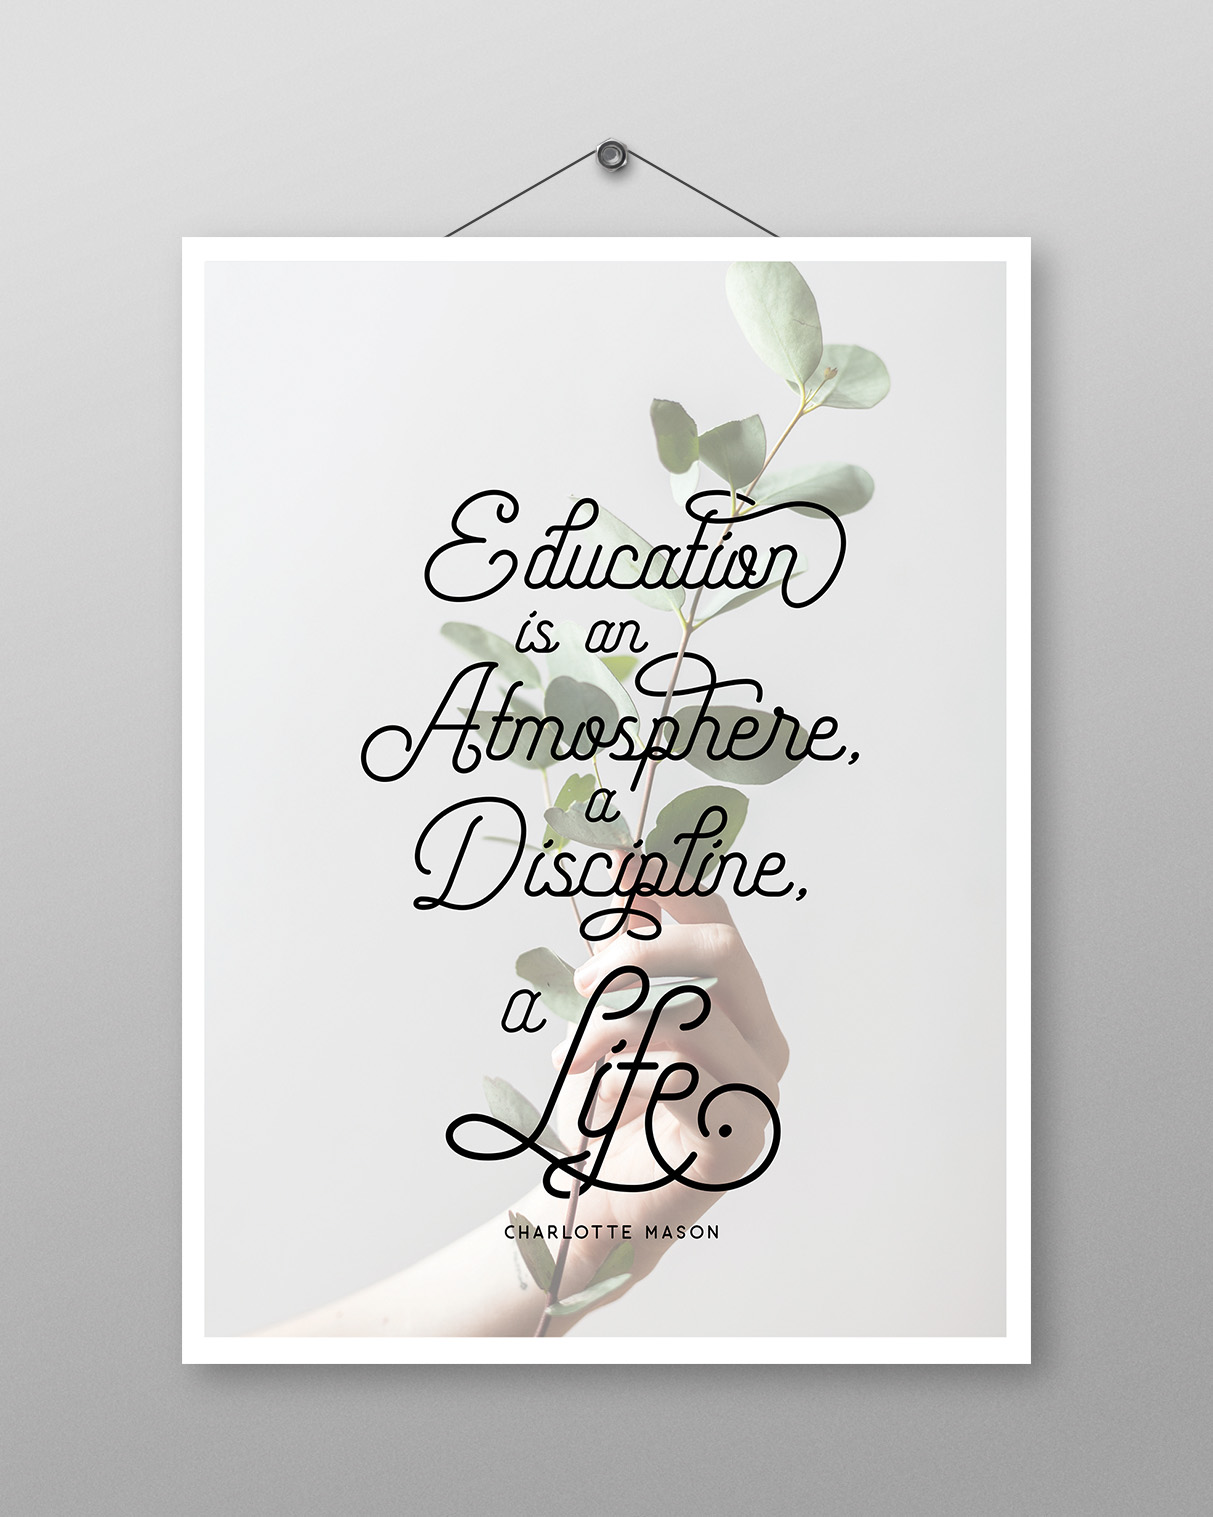 Atmosphere, Discipline, Life Poster